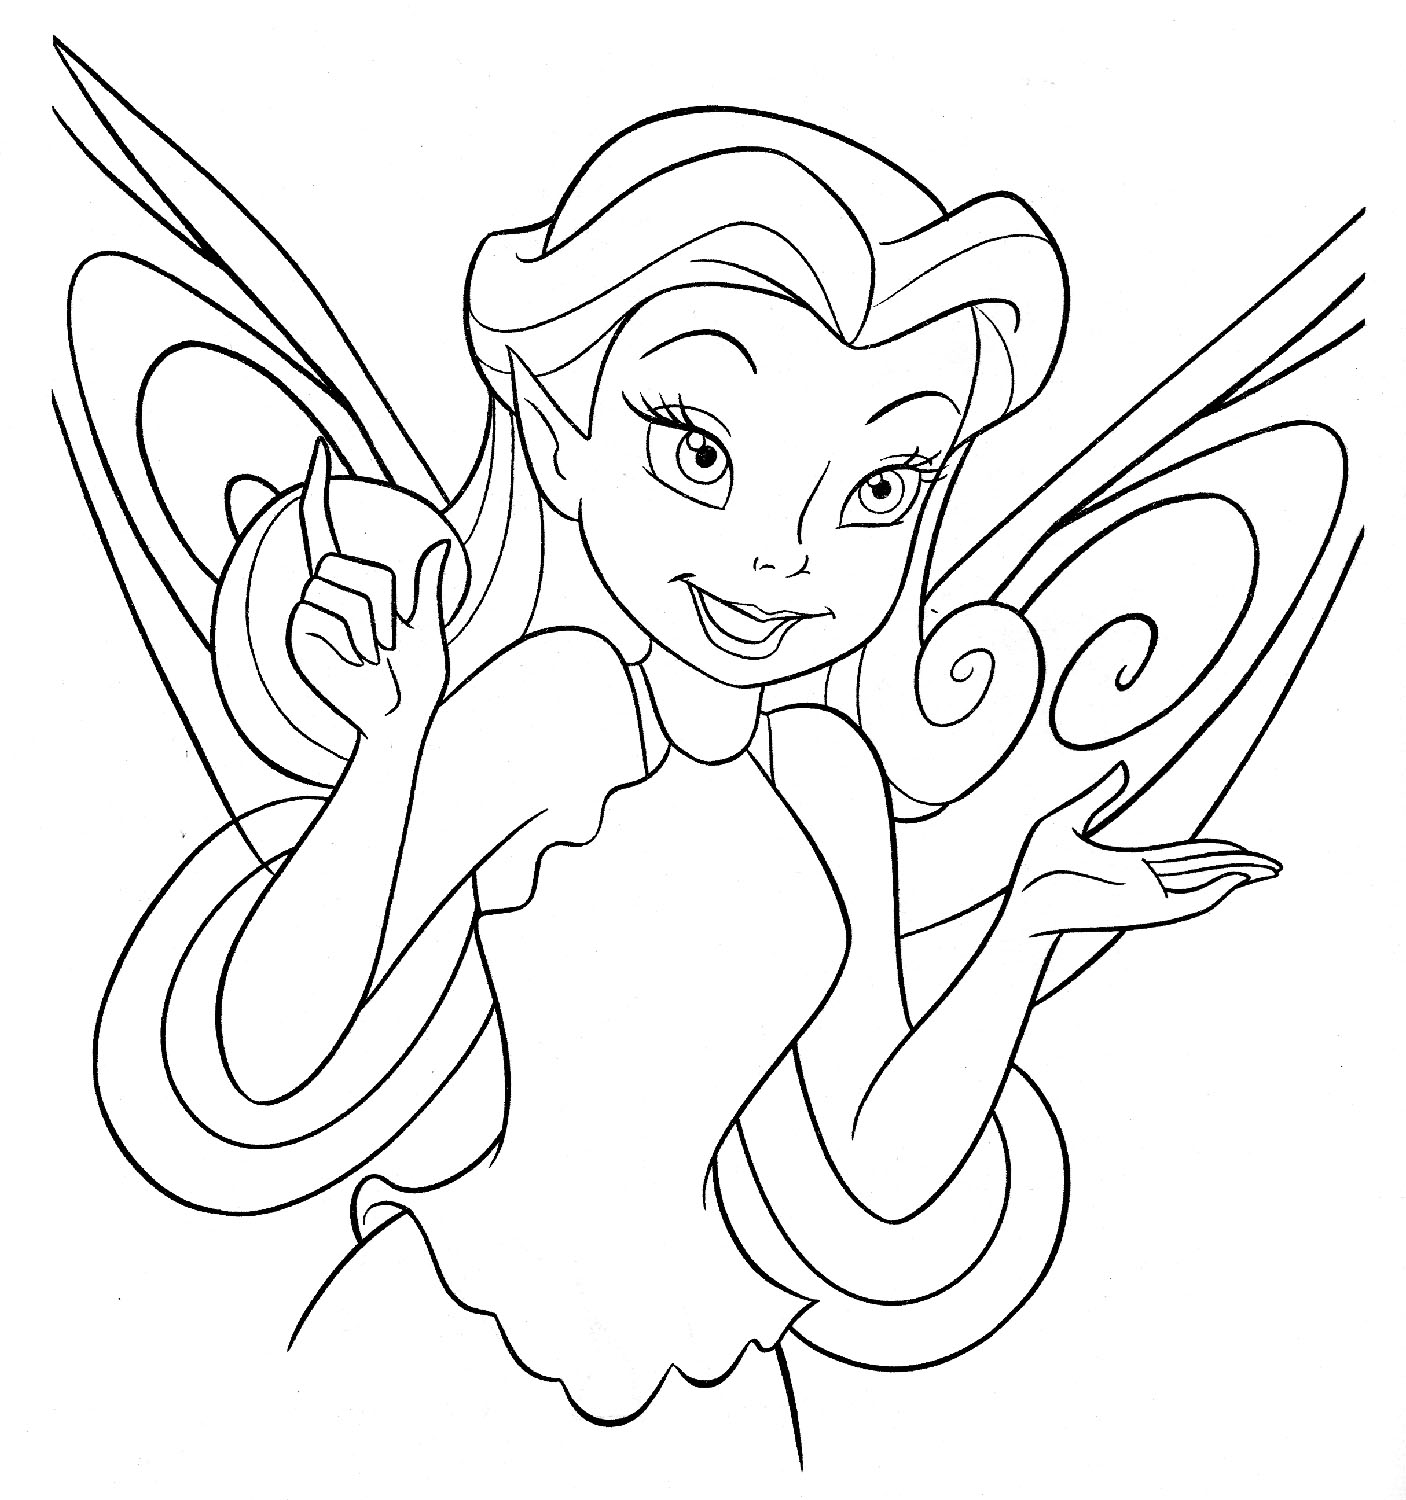 Colouring pages to print disney - Download Disney Fairies Coloring Pages Colouring Print